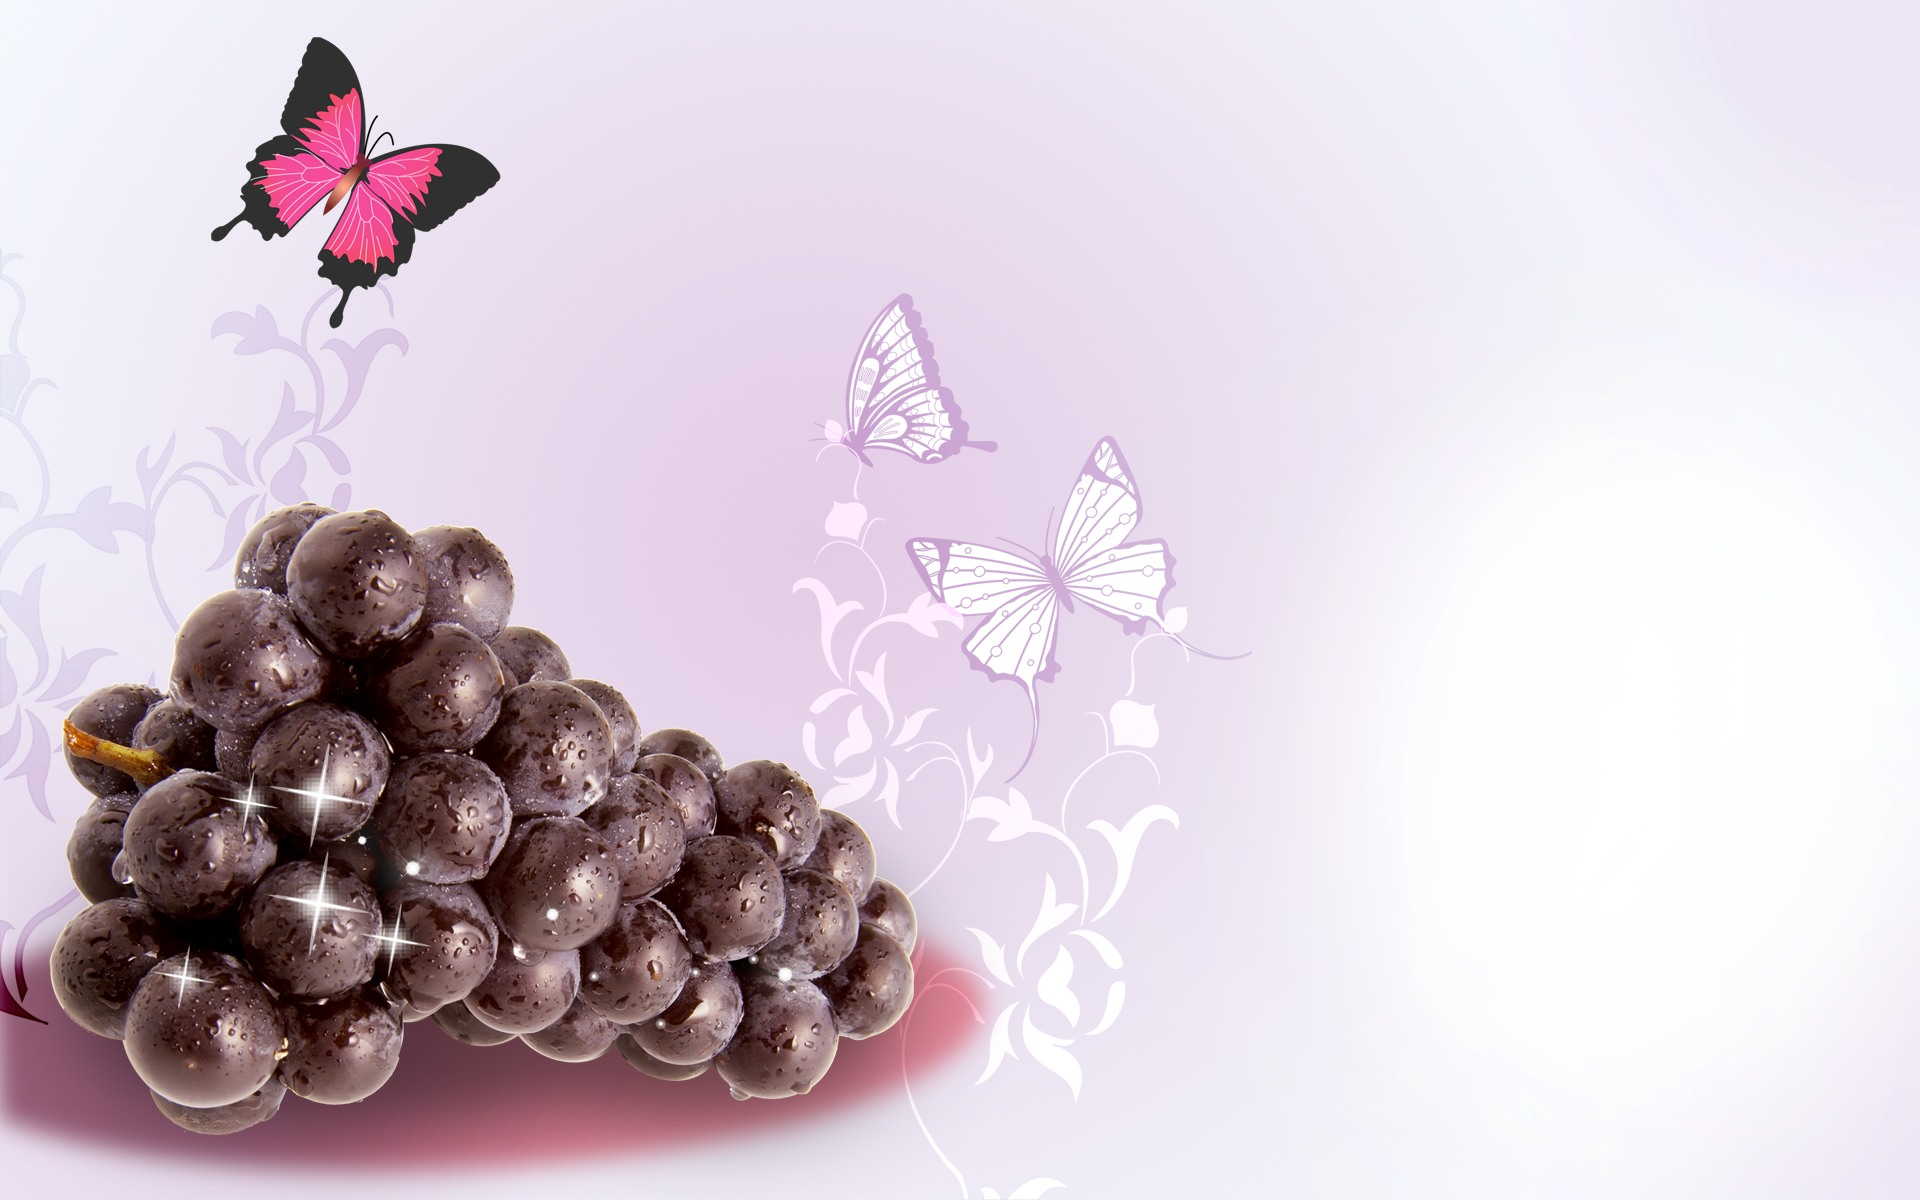 Graphic Design Background of Grapes and Fruit